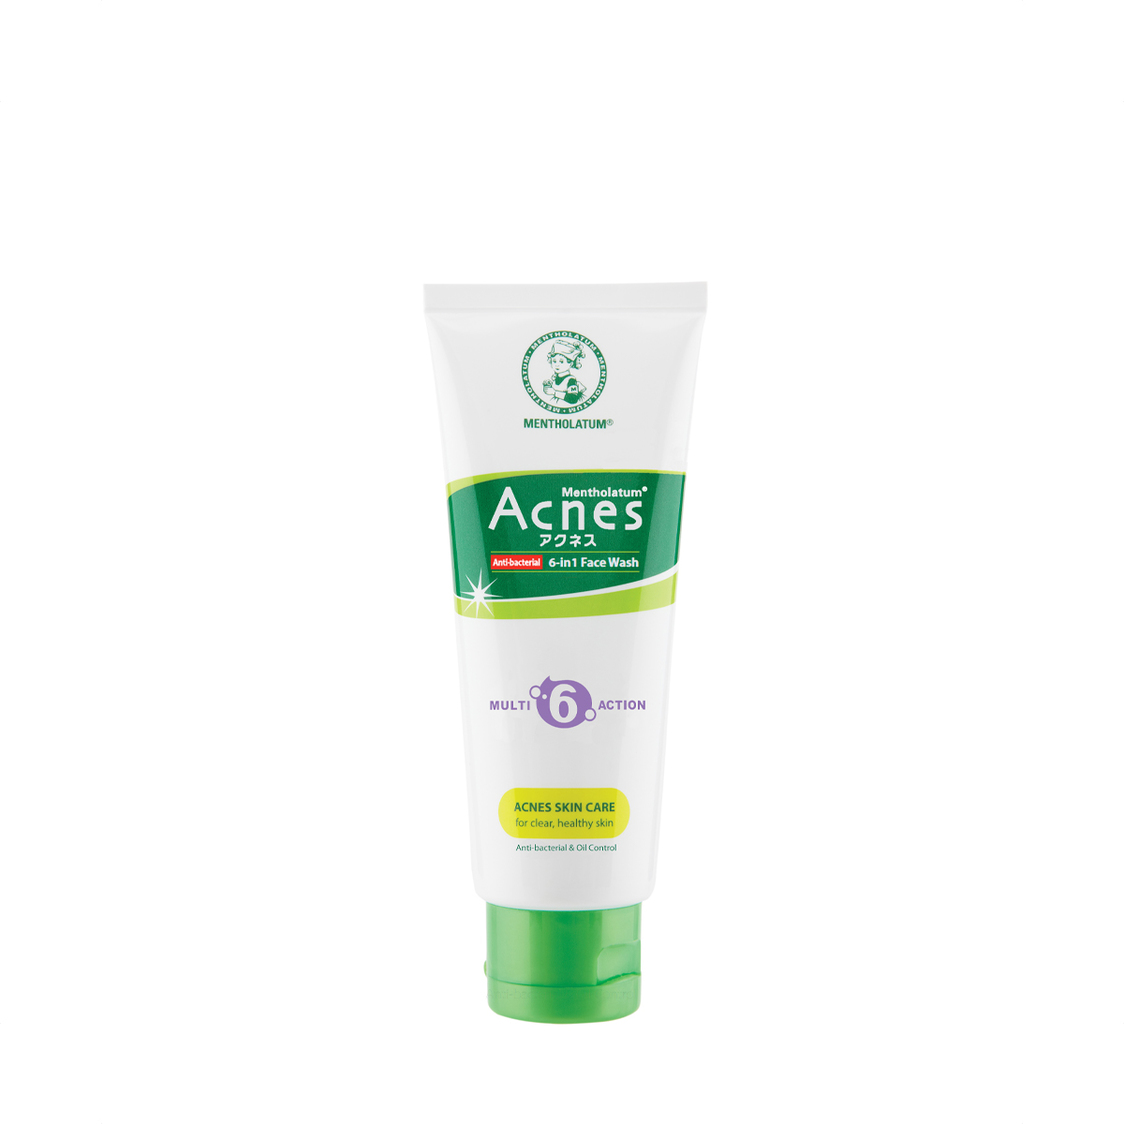 Acnes 6-in-1 Multi Action Wash 100g